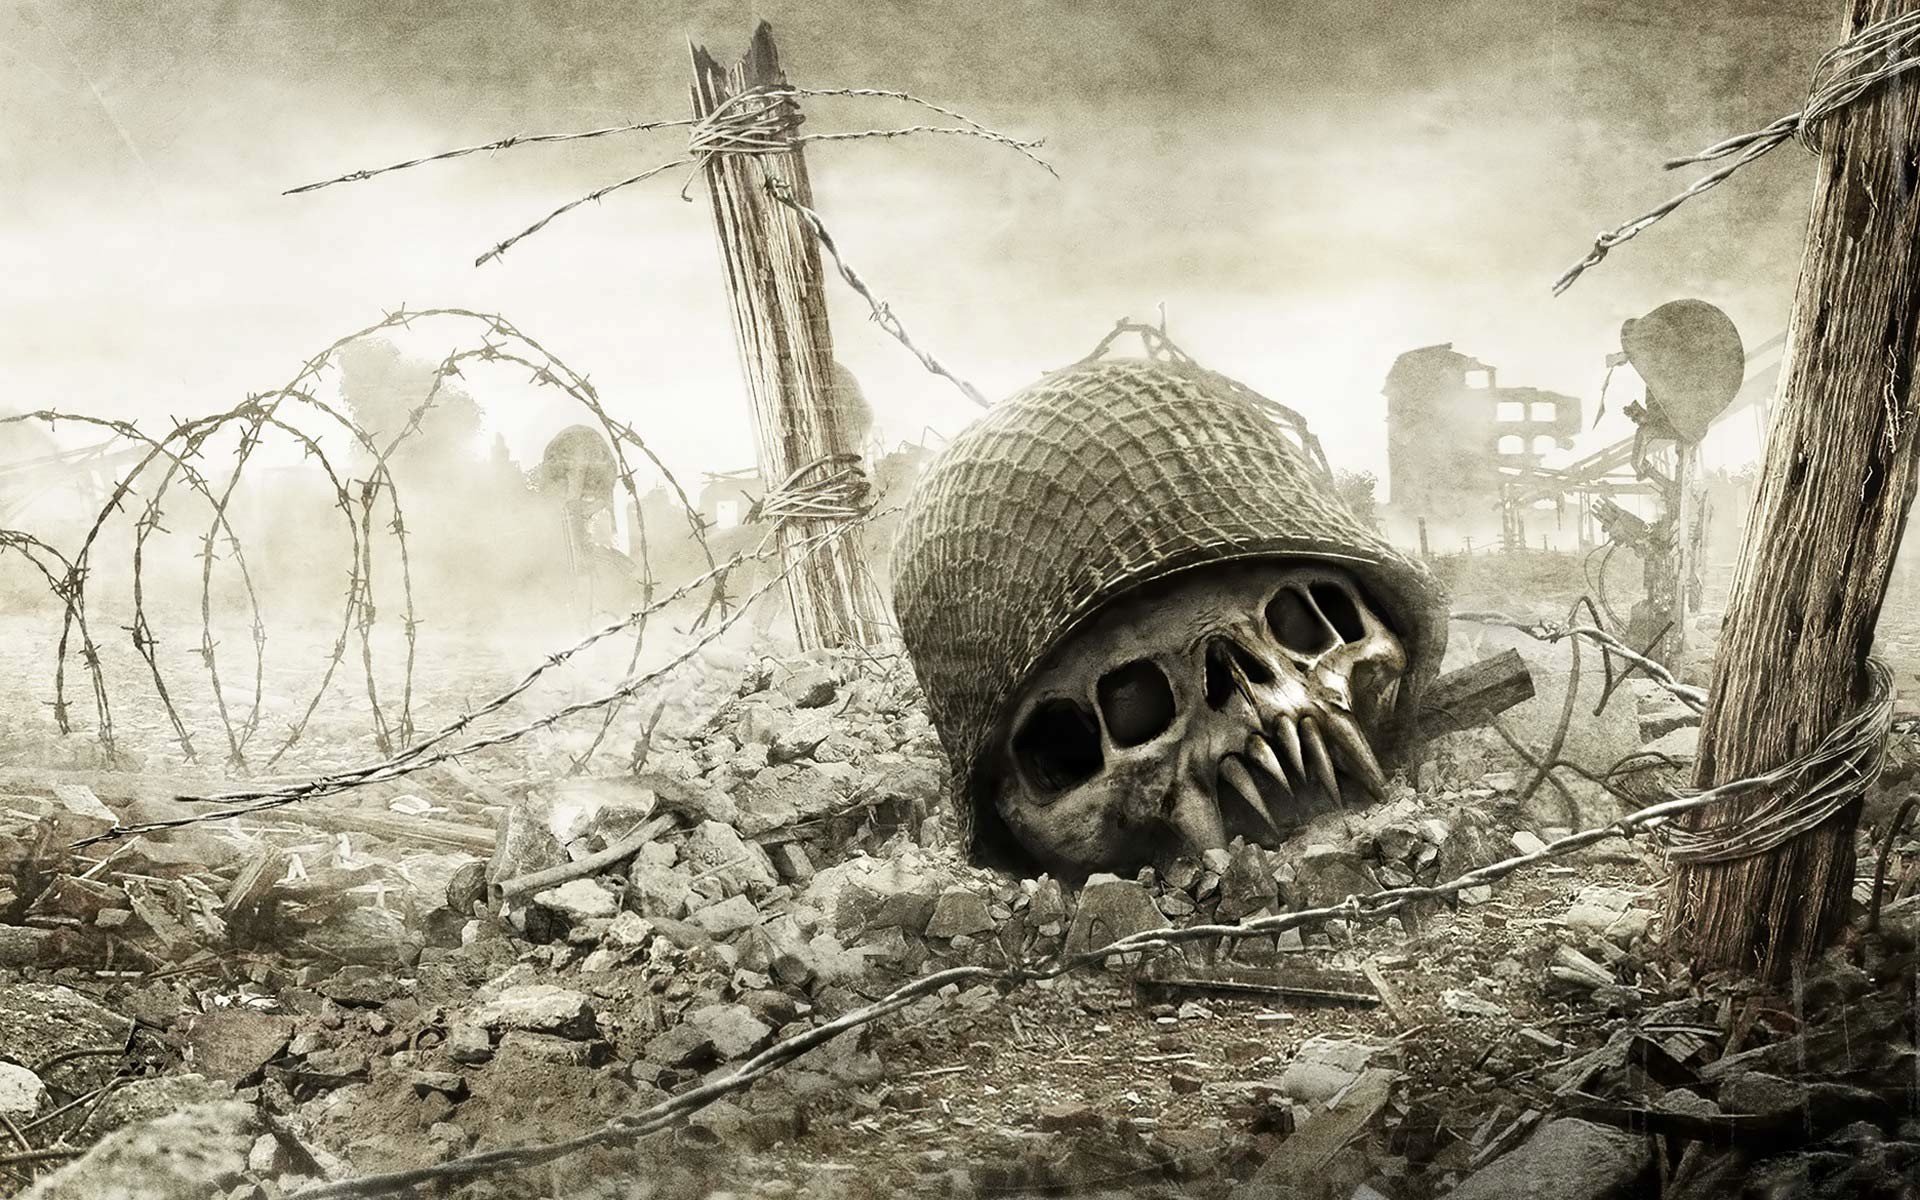 War wallpapers hd 73 images - Best war wallpapers hd ...